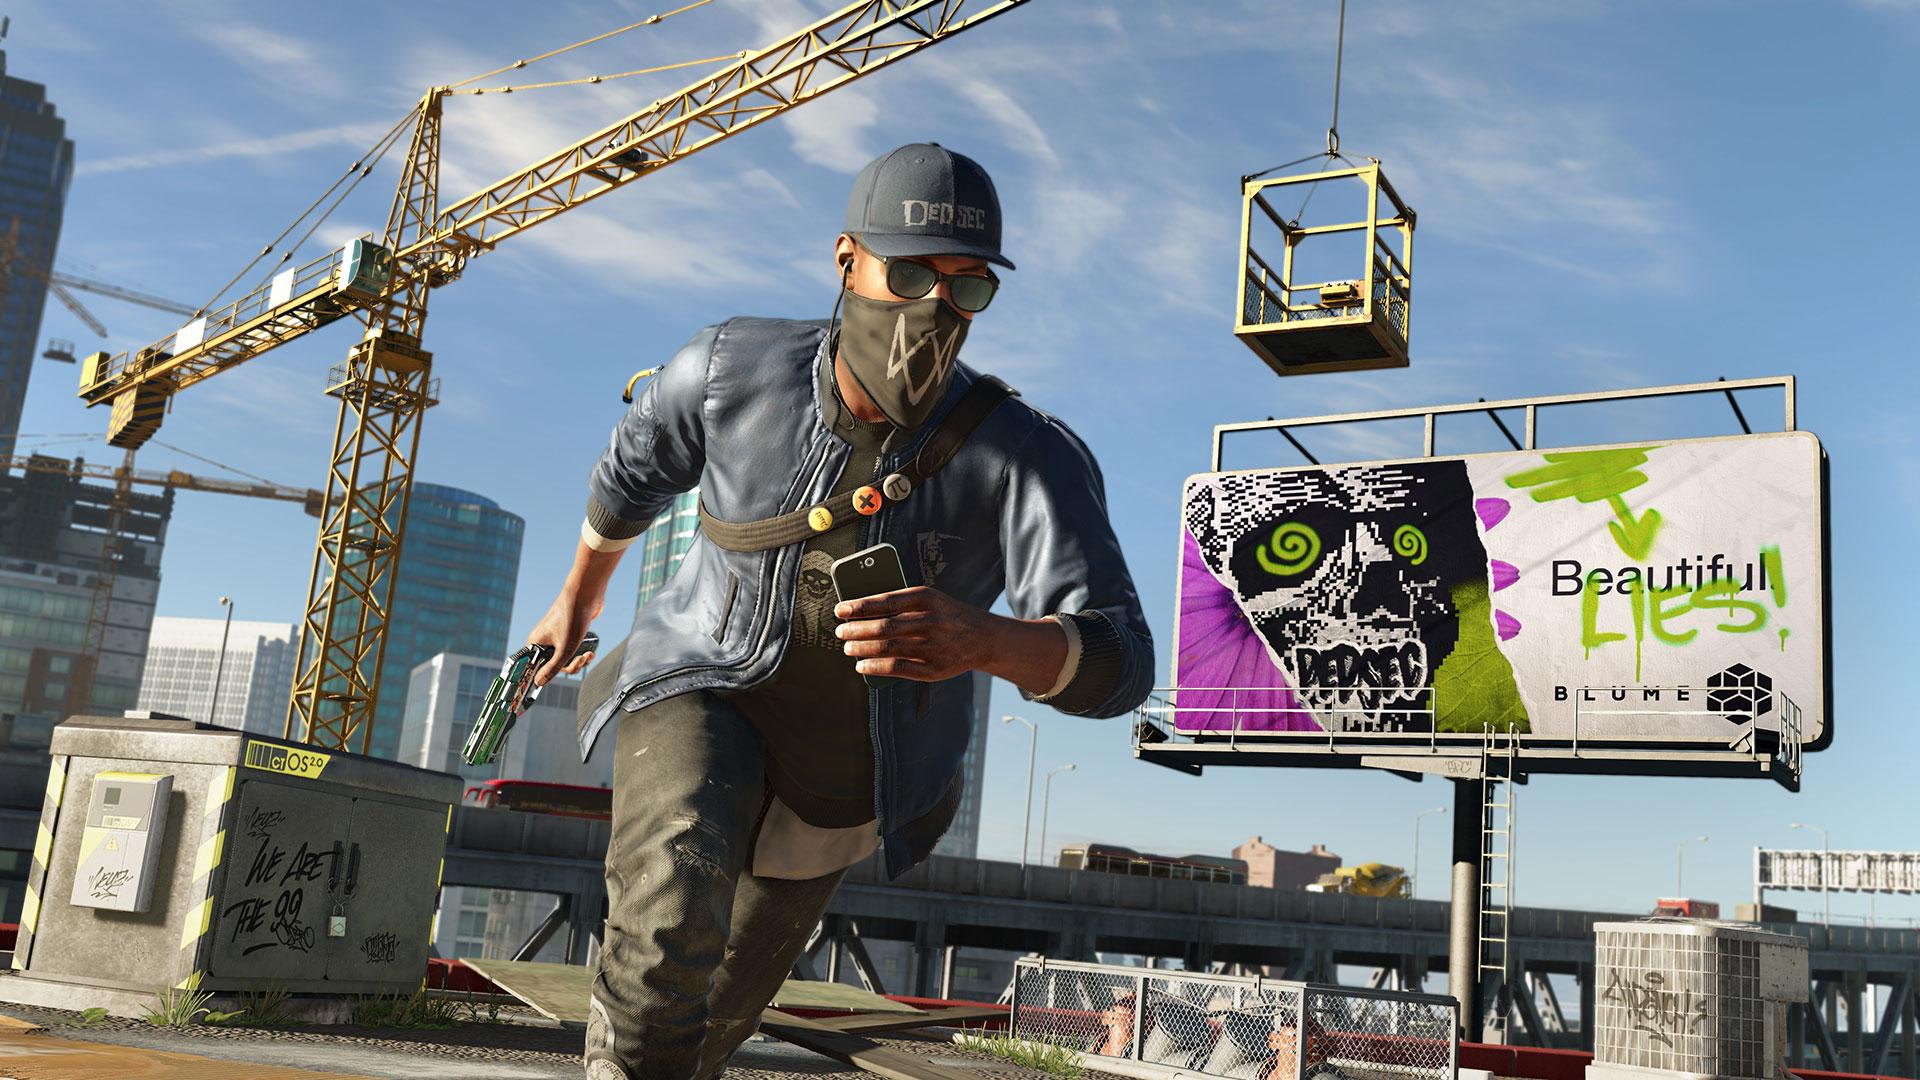 2016 watch dogs 2 hd games 4k wallpapers images